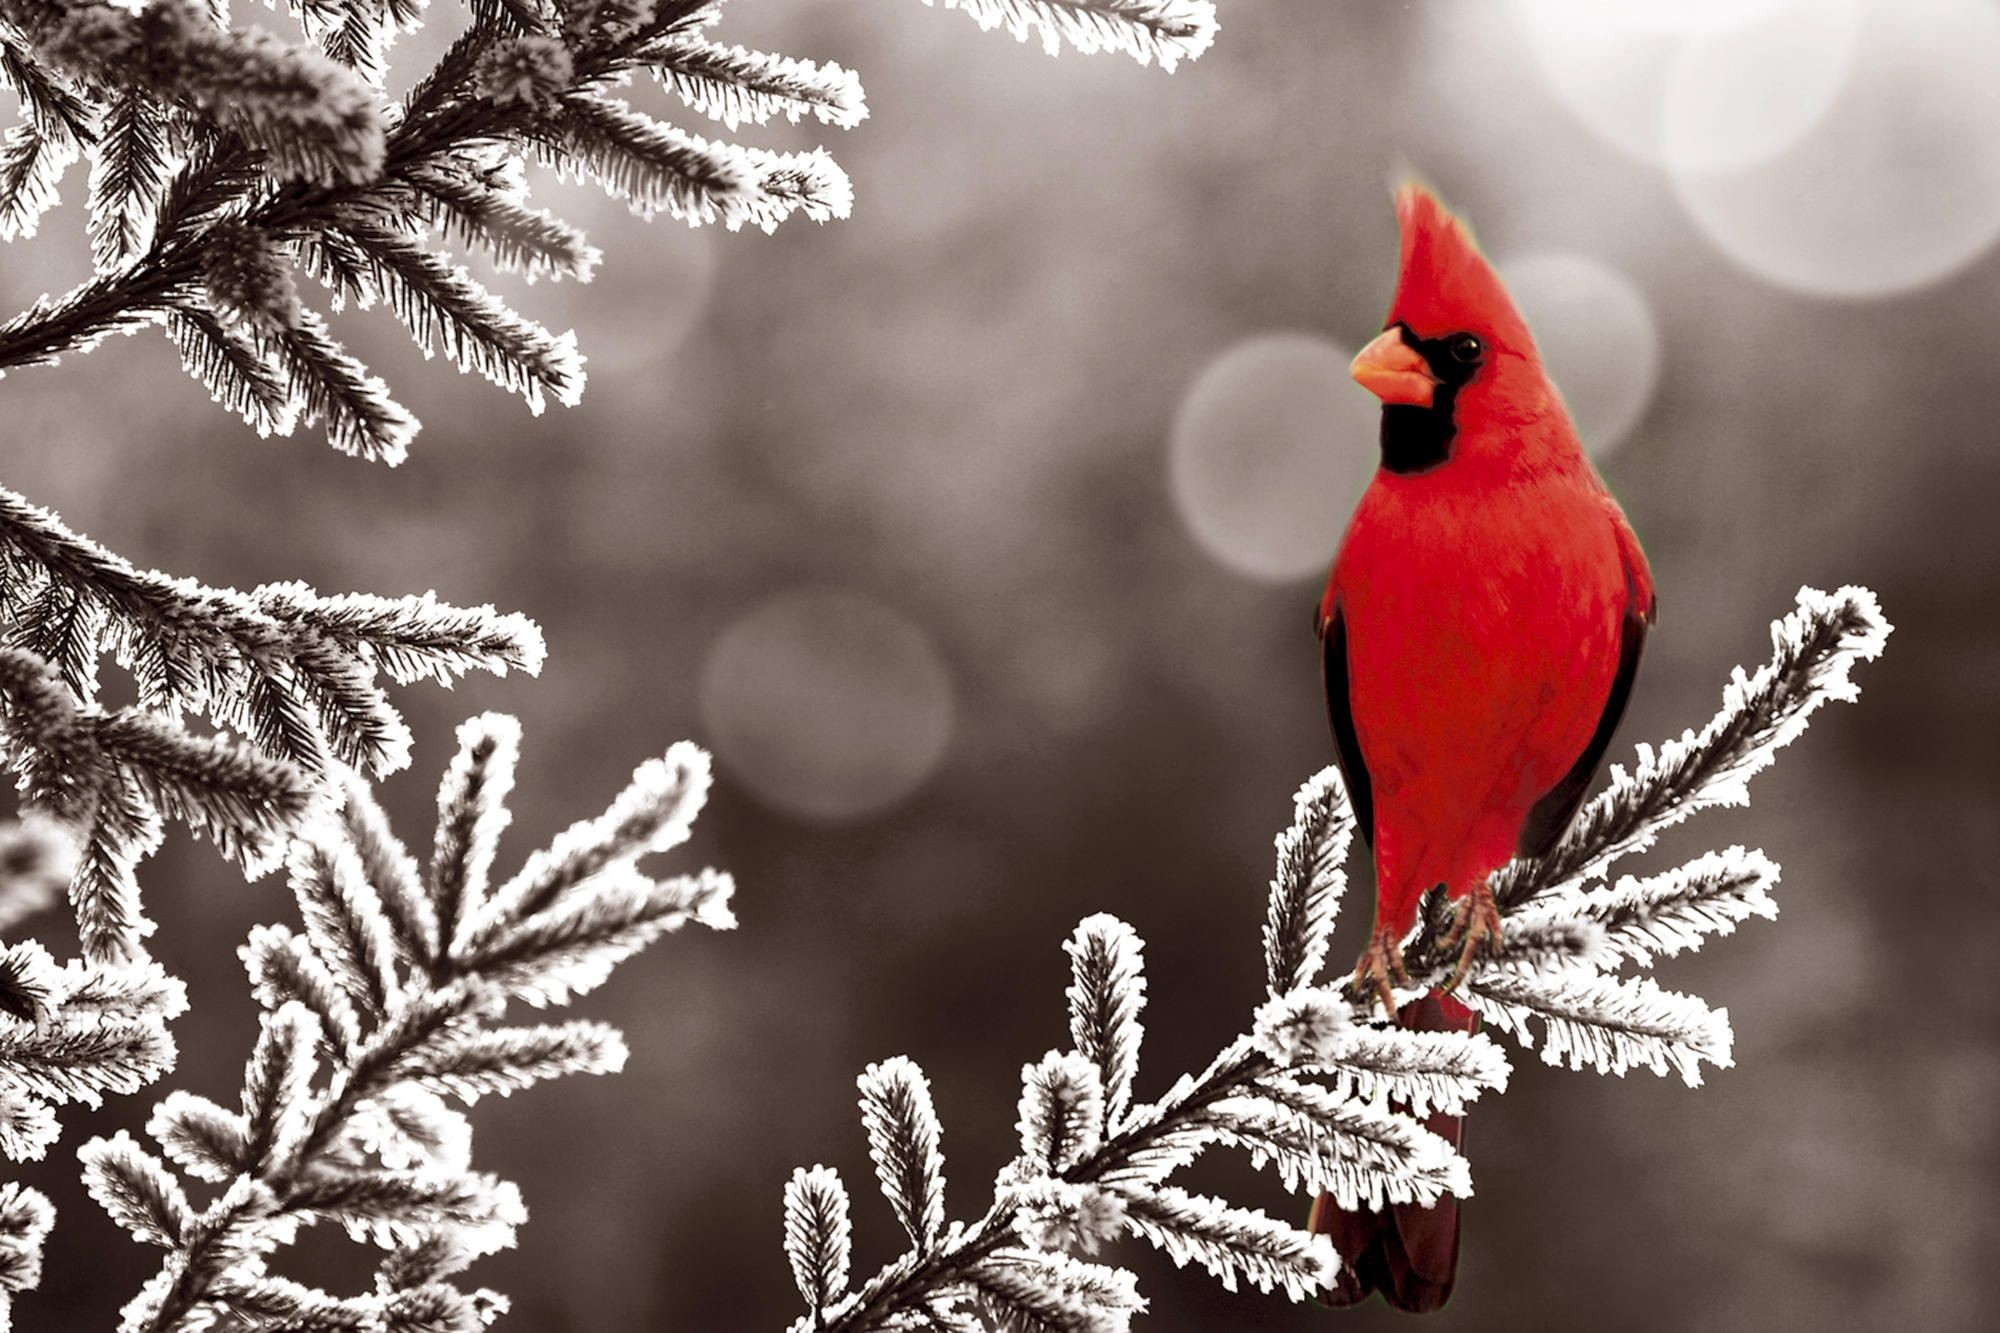 HD Wallpaper and background photos of male cardinal perched in a tree in  the snow for fans of Birds images.